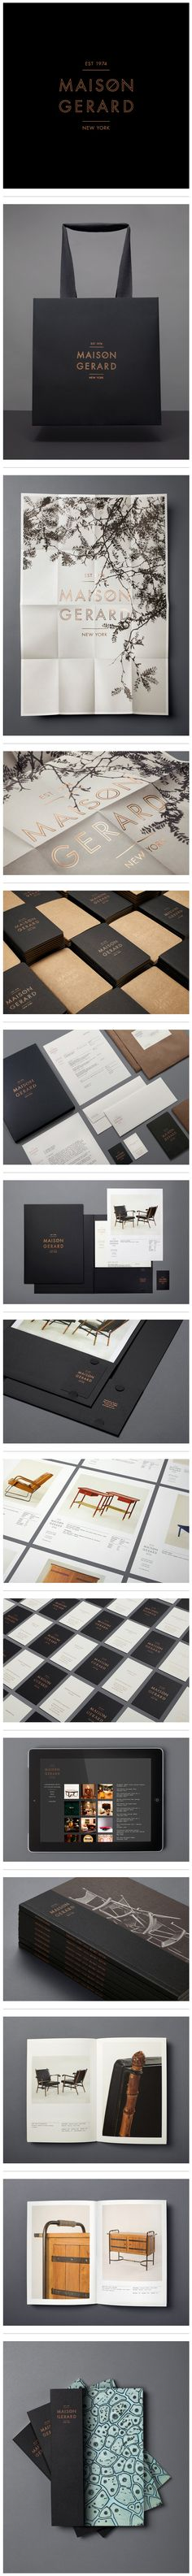 A lovely study in black and white branding for Maison Gerard, an amazing NYC-based antiques dealer. Designed by Christian Cervantes of motherdesign.com